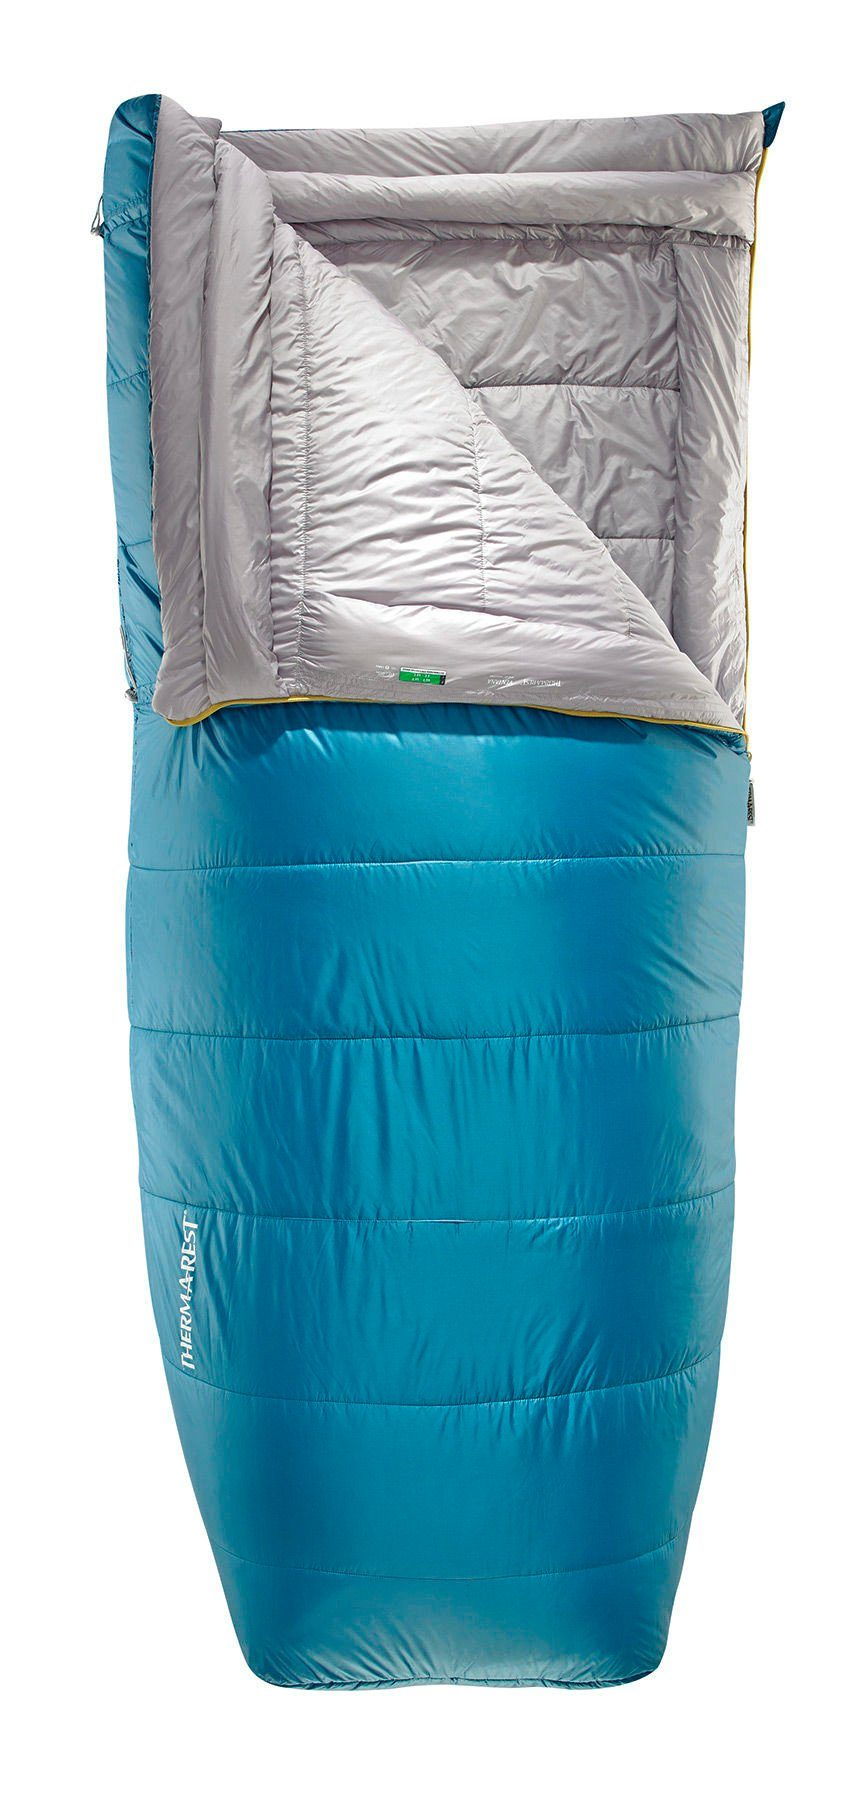 Therm-a-Rest Schlafsack »Ventana Sleeping Bag Large«